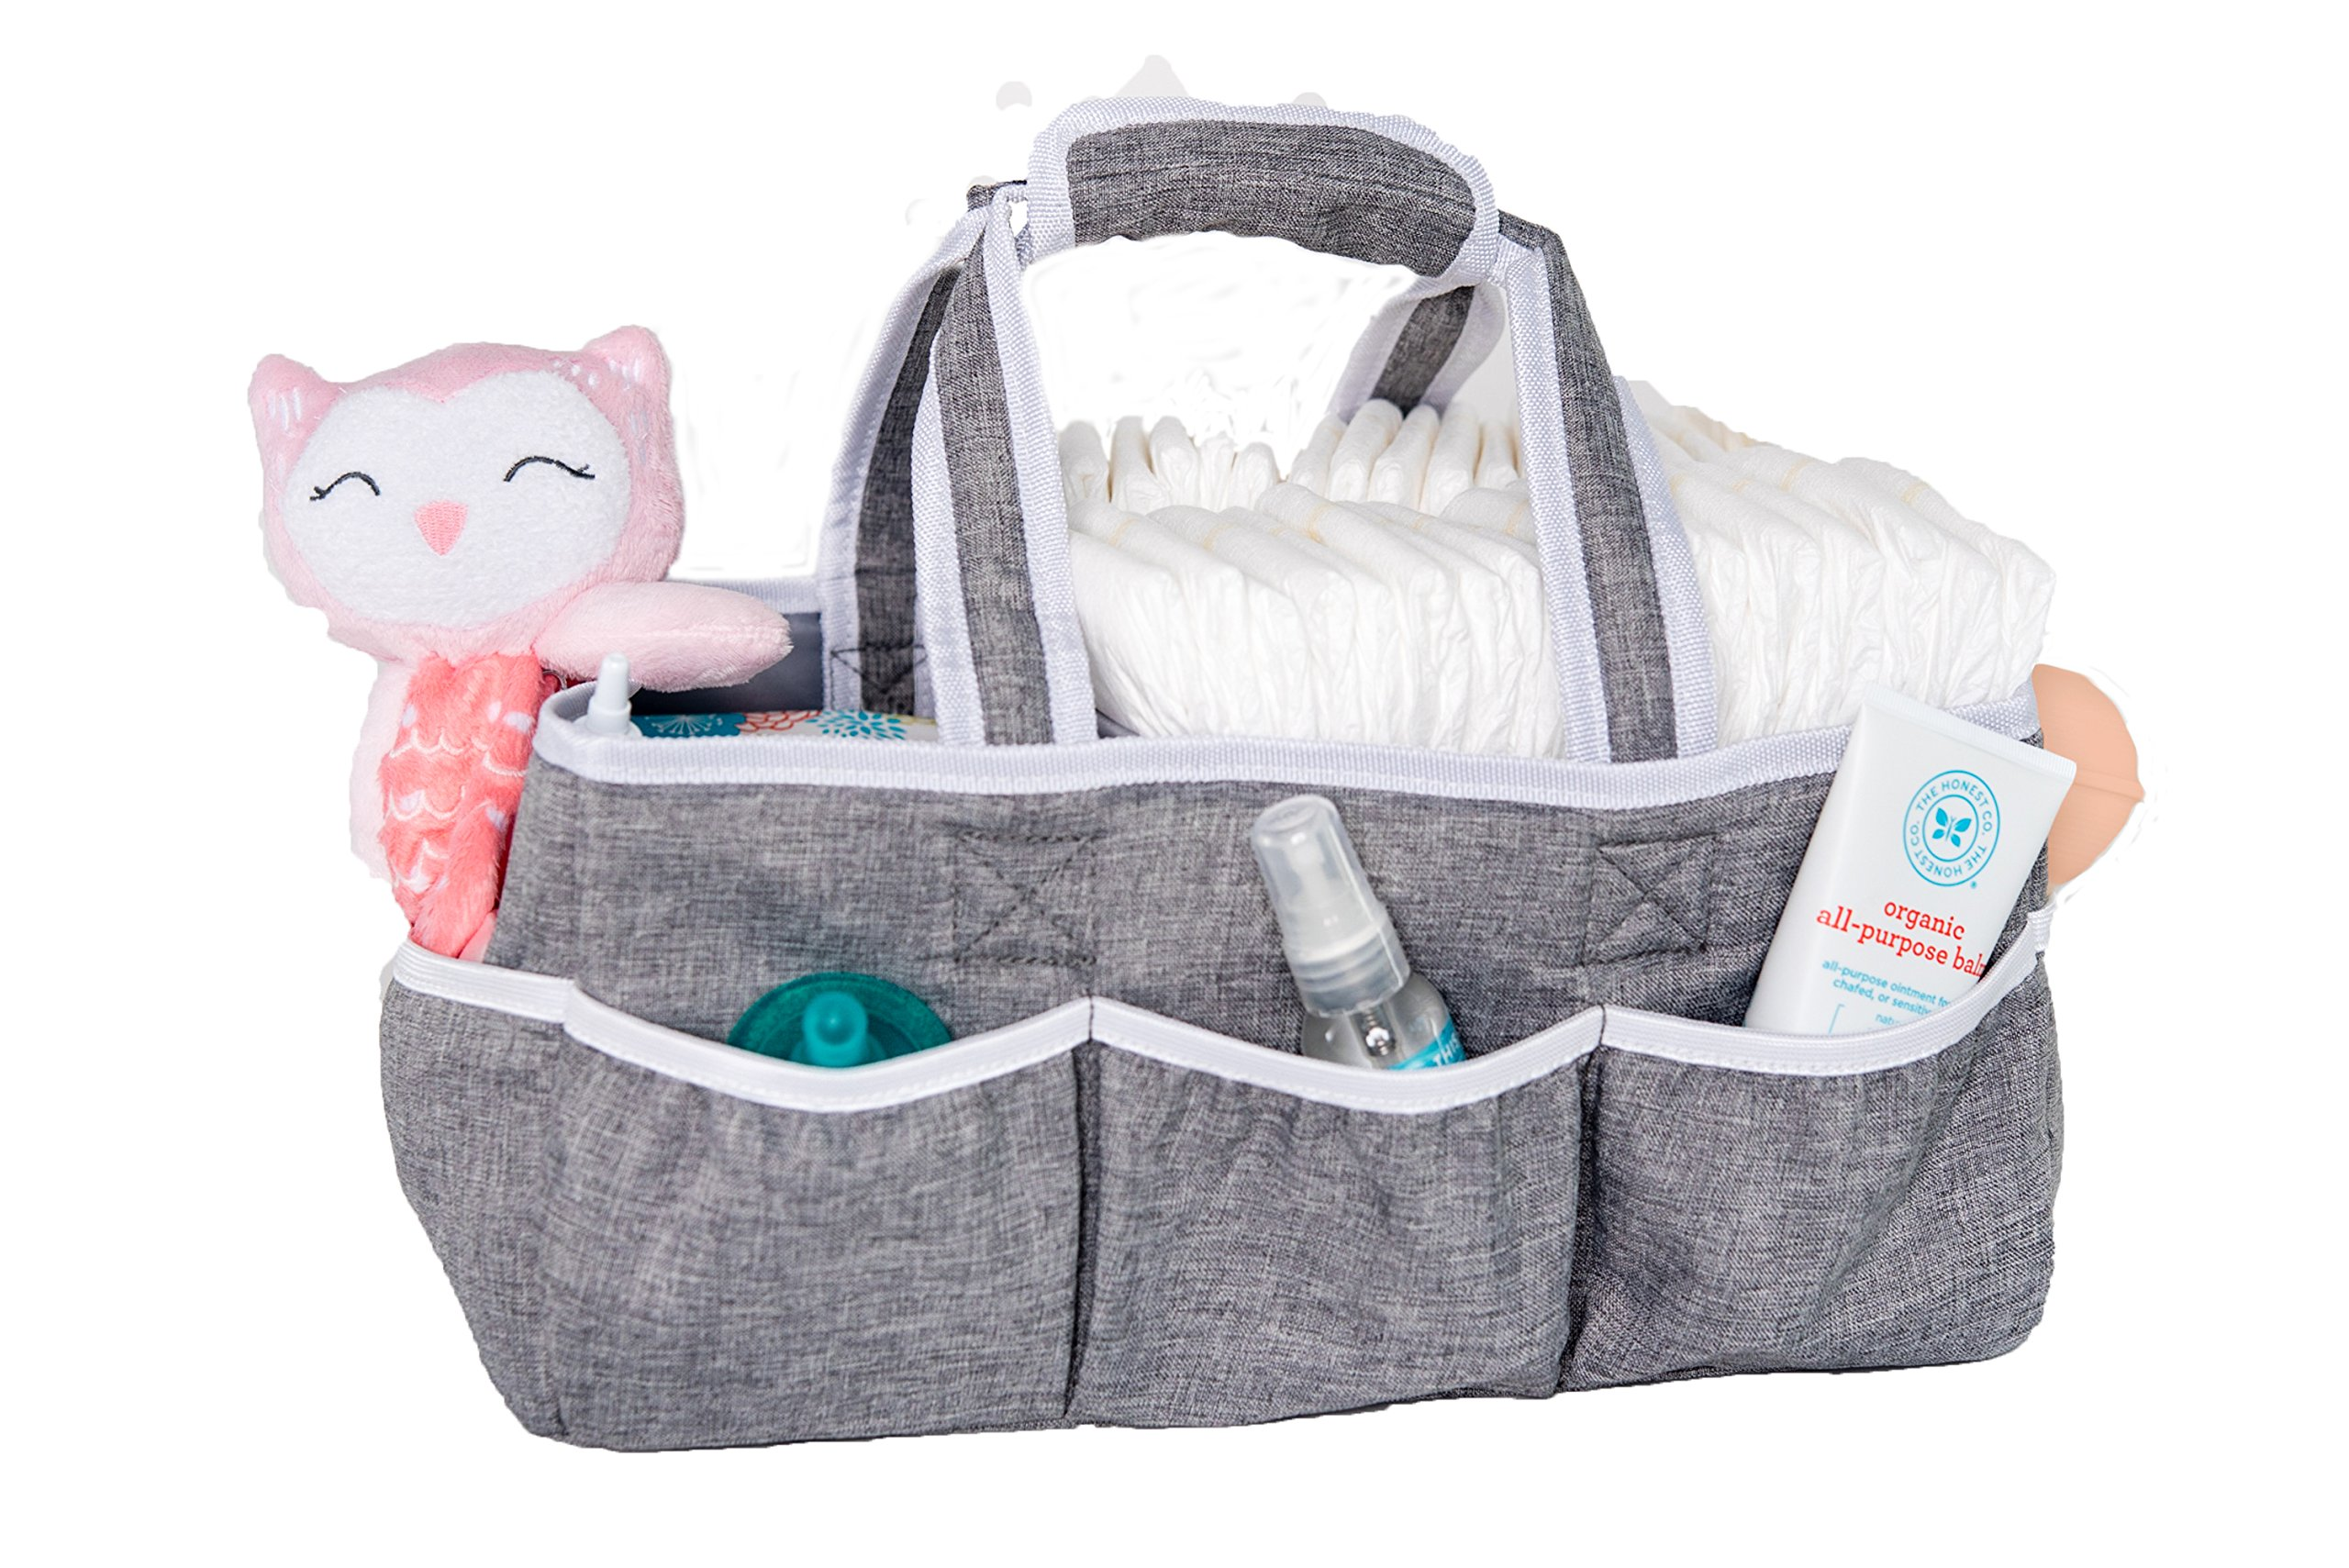 Wallaby Diaper Caddy Storage Bin - Organizer for Diapers, Wipes, Baby Bottles and More. Great for Home, Car, Travel or a Baby Shower Gift. by Bed Buddy (Image #2)